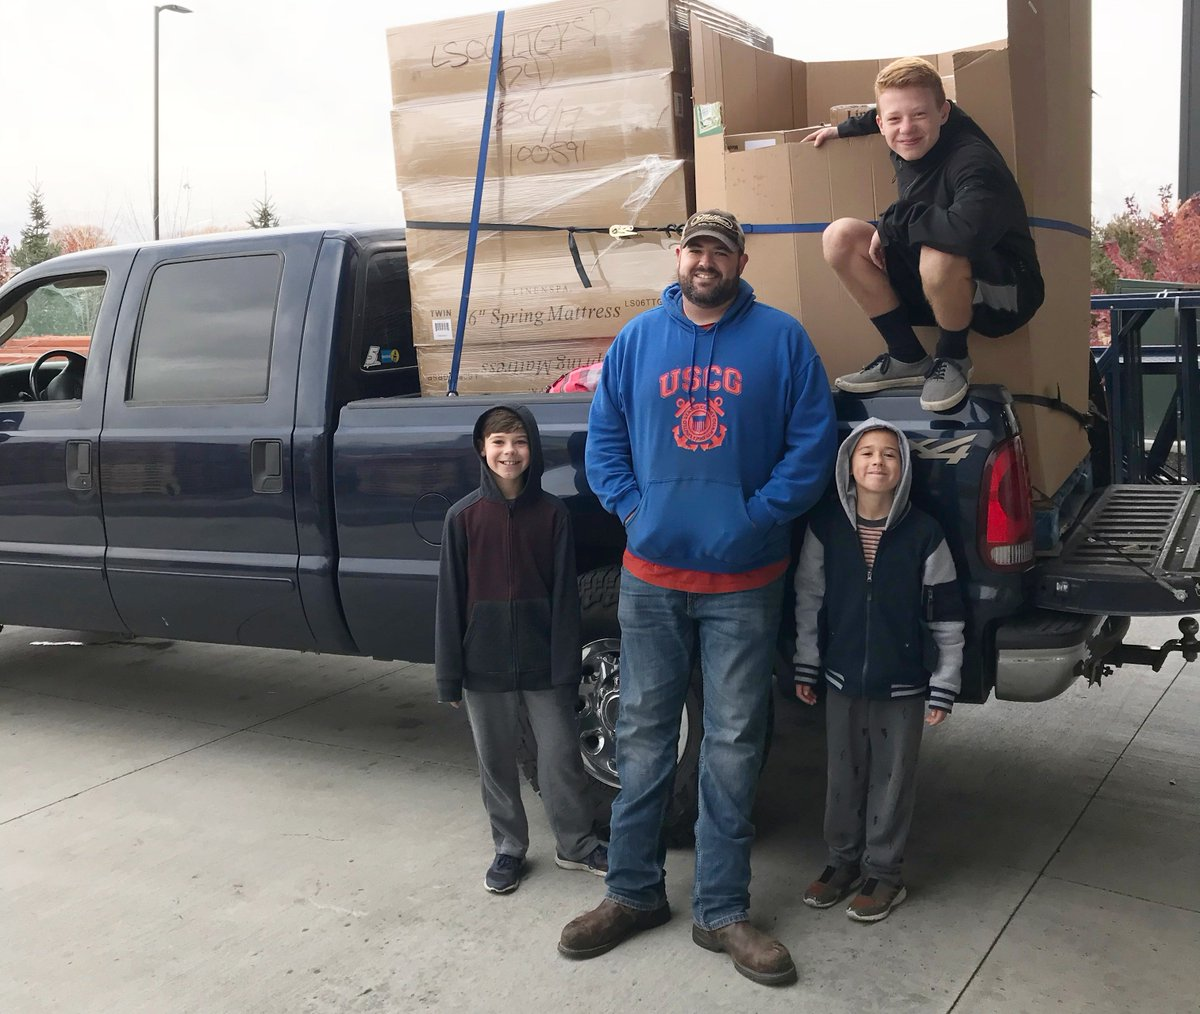 Looking for ways to give back as a family? SHP has many opportunities for entire families to help! See how to get involved:  https://hubs.ly/H099Xk50